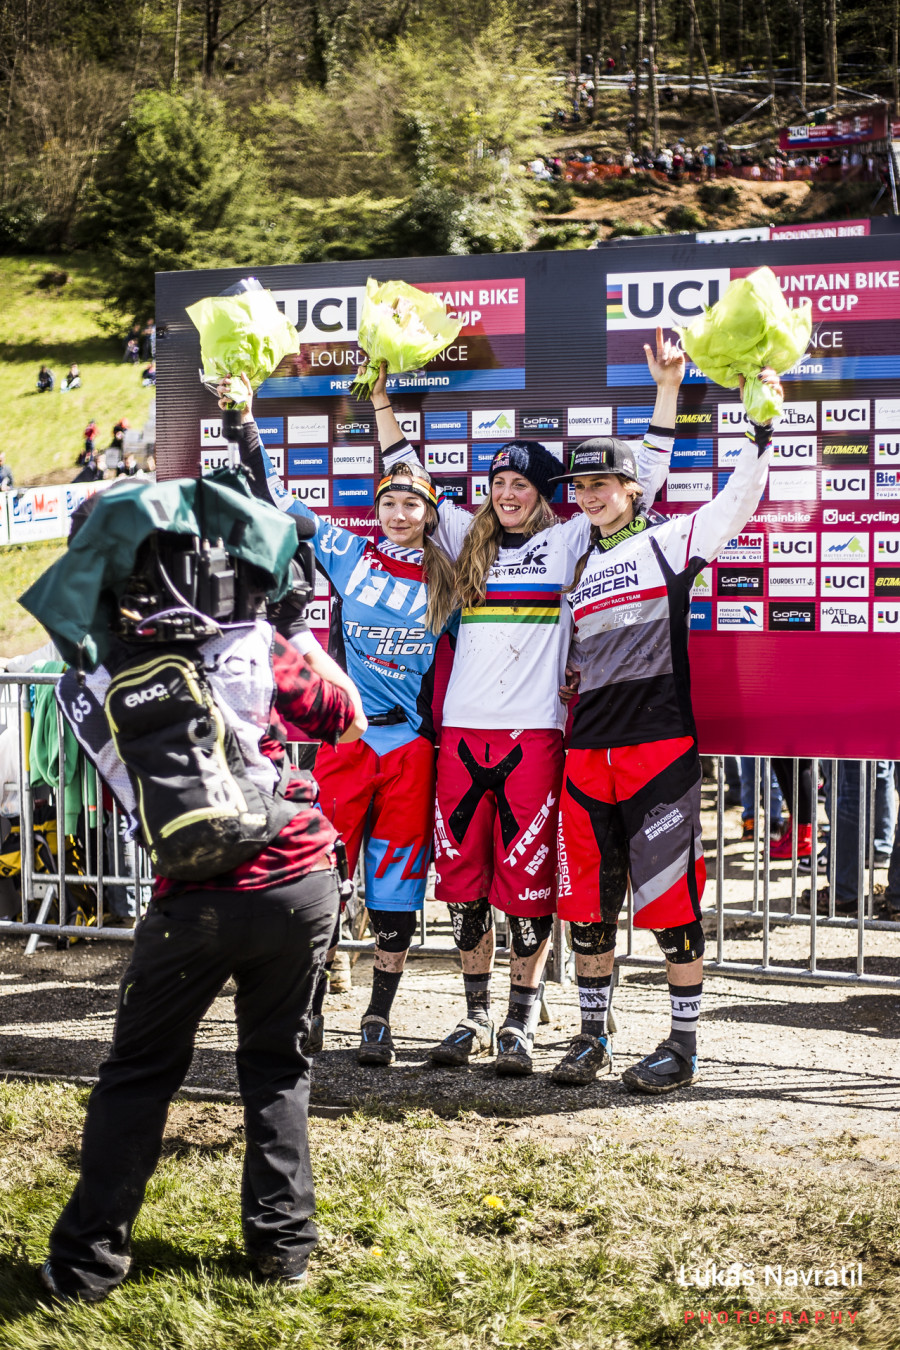 Tahnee Seagrave is looking fast this year finishing second. As has been a trend over the past few years Rachel Atherton took the win, the first on her new bike/team.